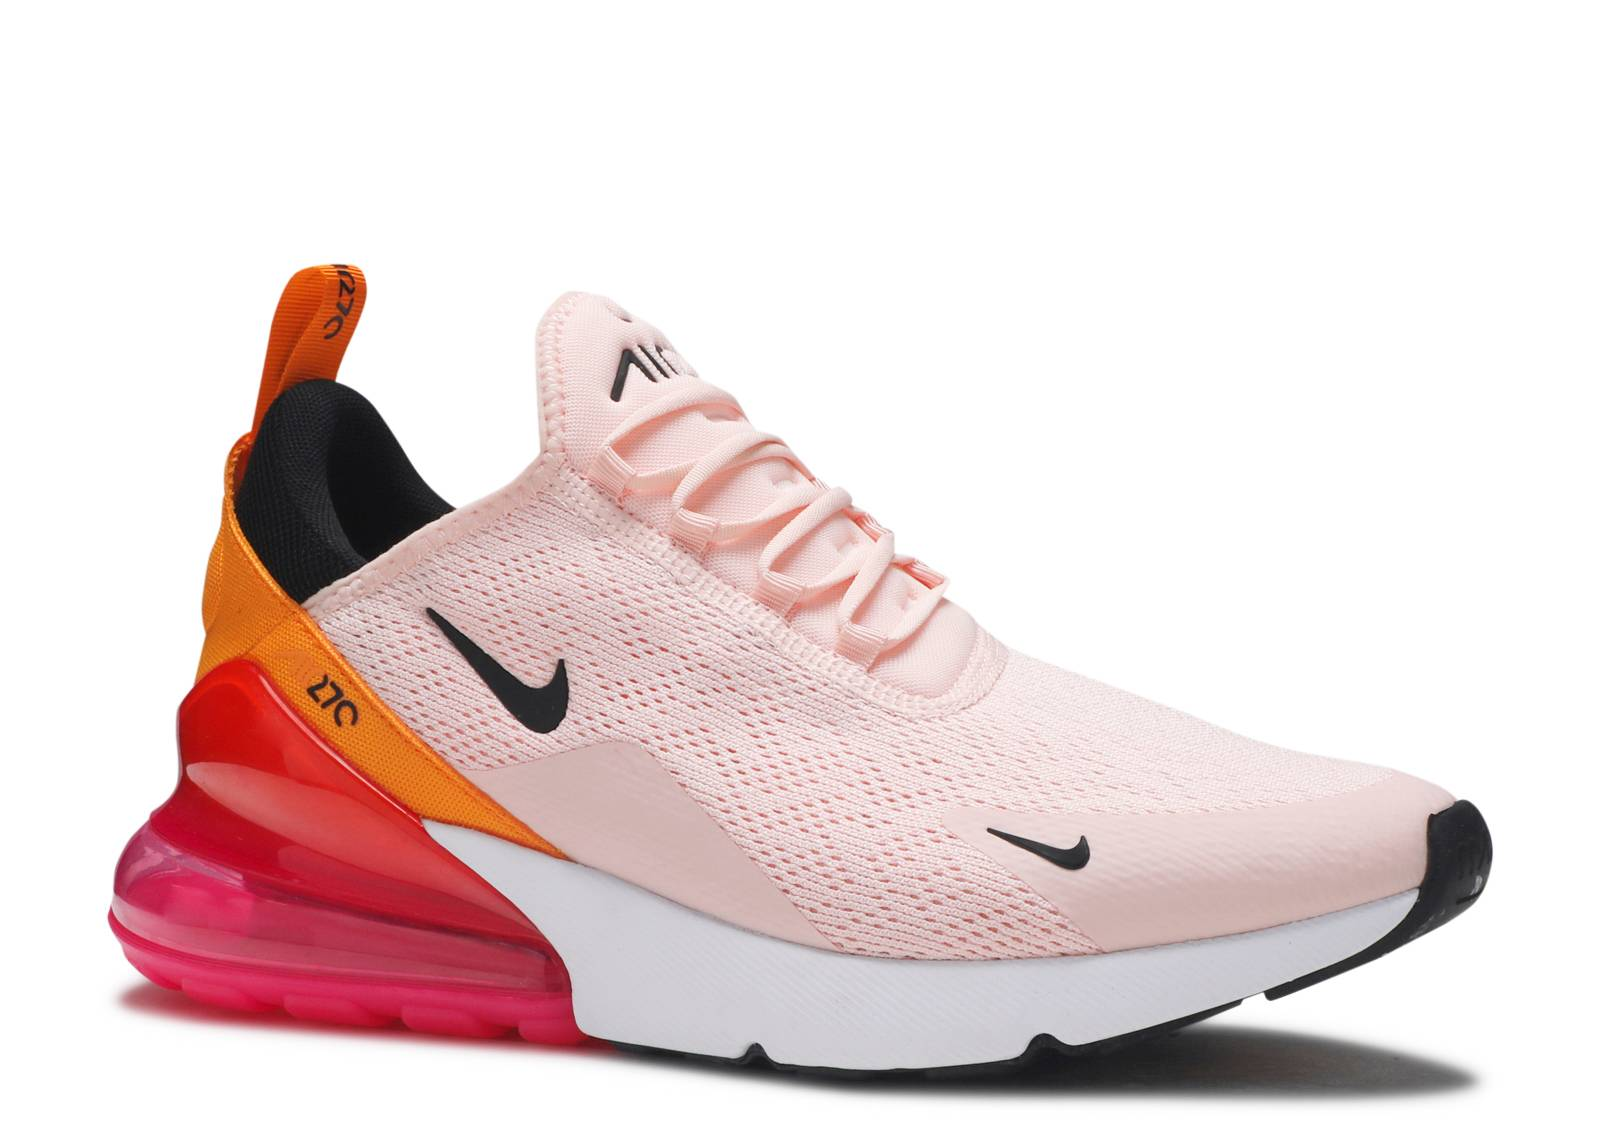 Wmns Air Max 270 'Washed Coral'